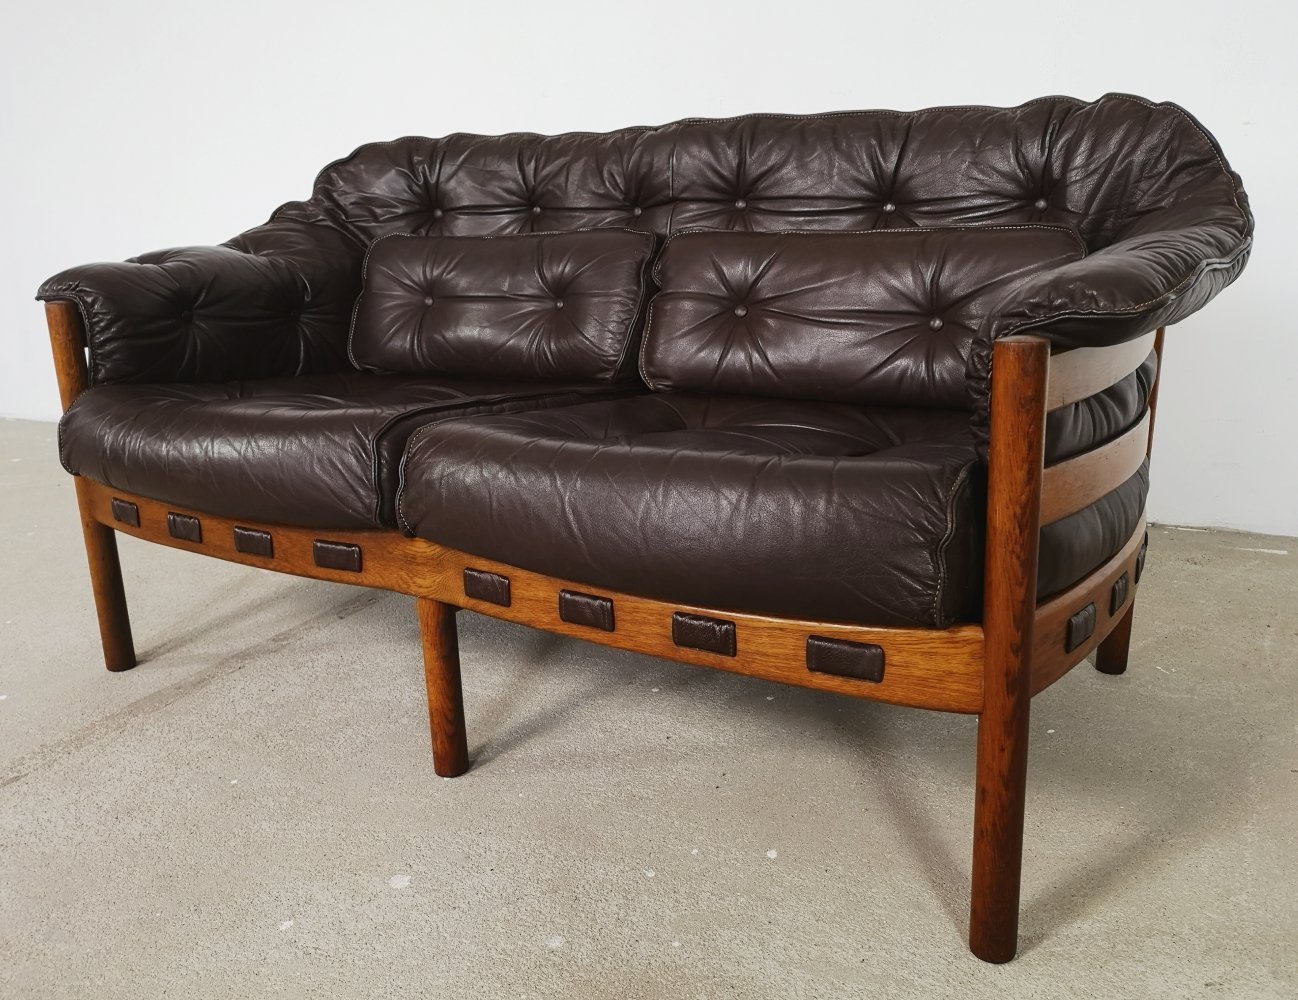 Arne Norell sofa in teak & leather